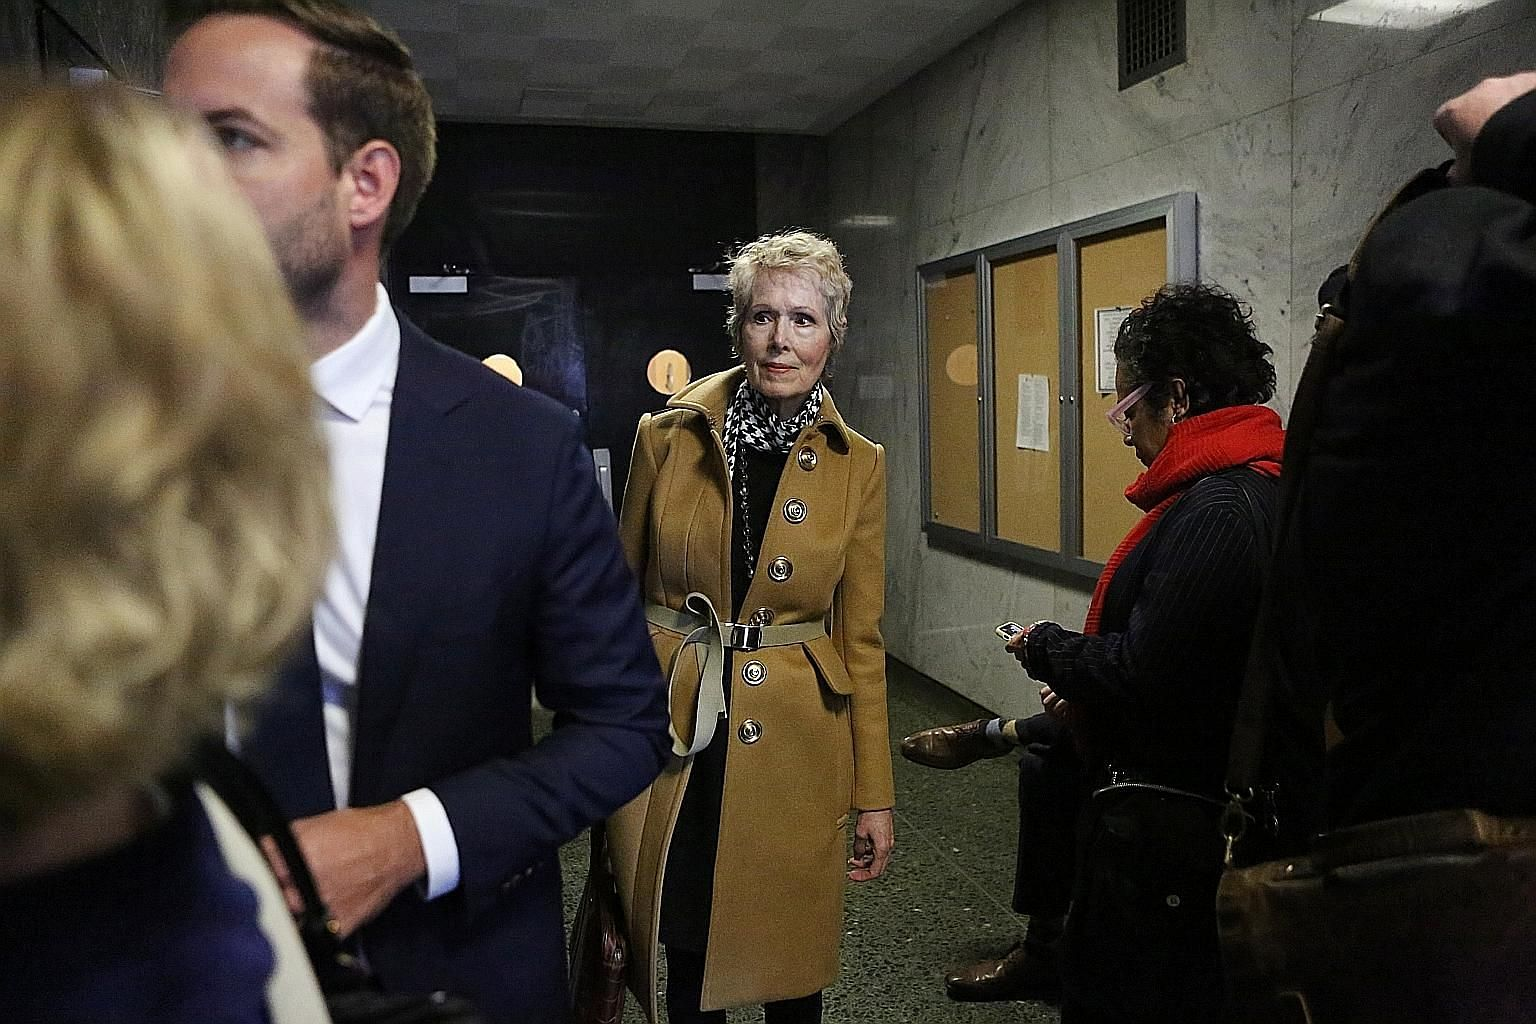 Ms E. Jean Carroll arriving at a Manhattan court in March. Ms Carroll, who sued US President Donald Trump for defamation in November, says he attacked her in a department store dressing room in Manhattan in the 1990s.